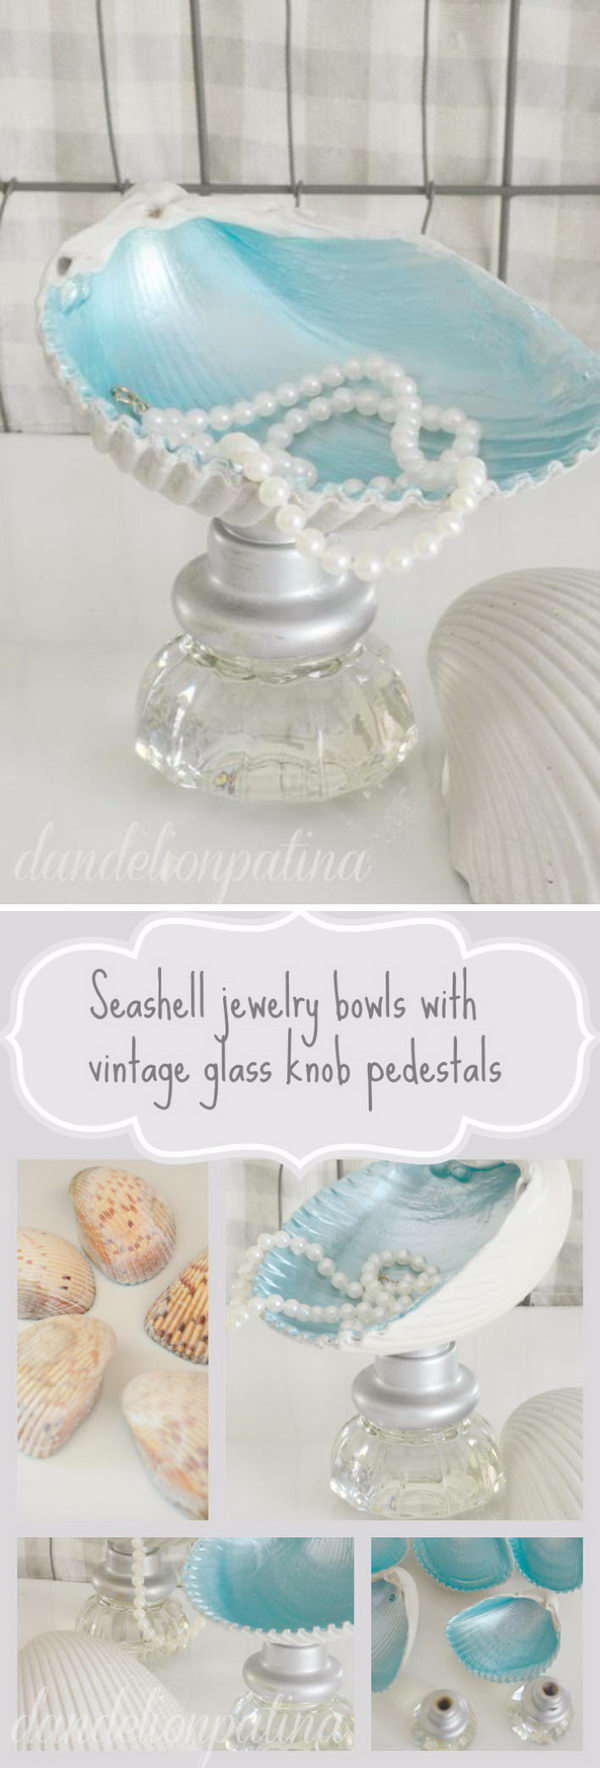 Shell Jewelry Bowls & Glass Knob Pedestals.